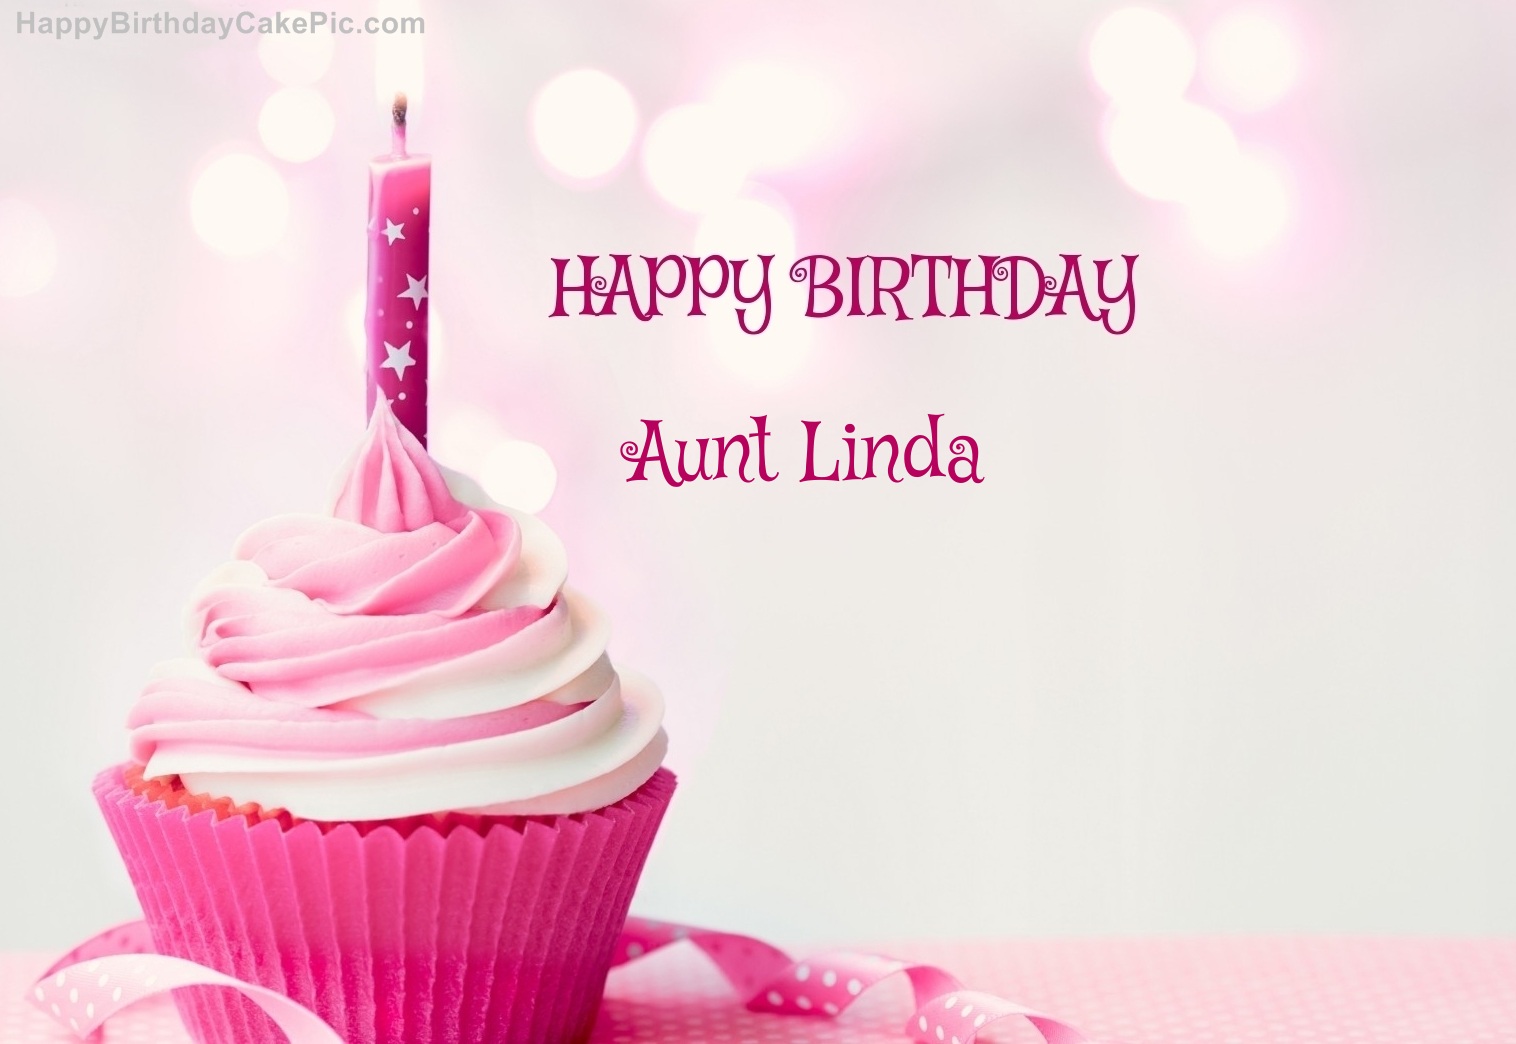 Happy Birthday Cupcake Candle Pink Cake For Aunt Linda